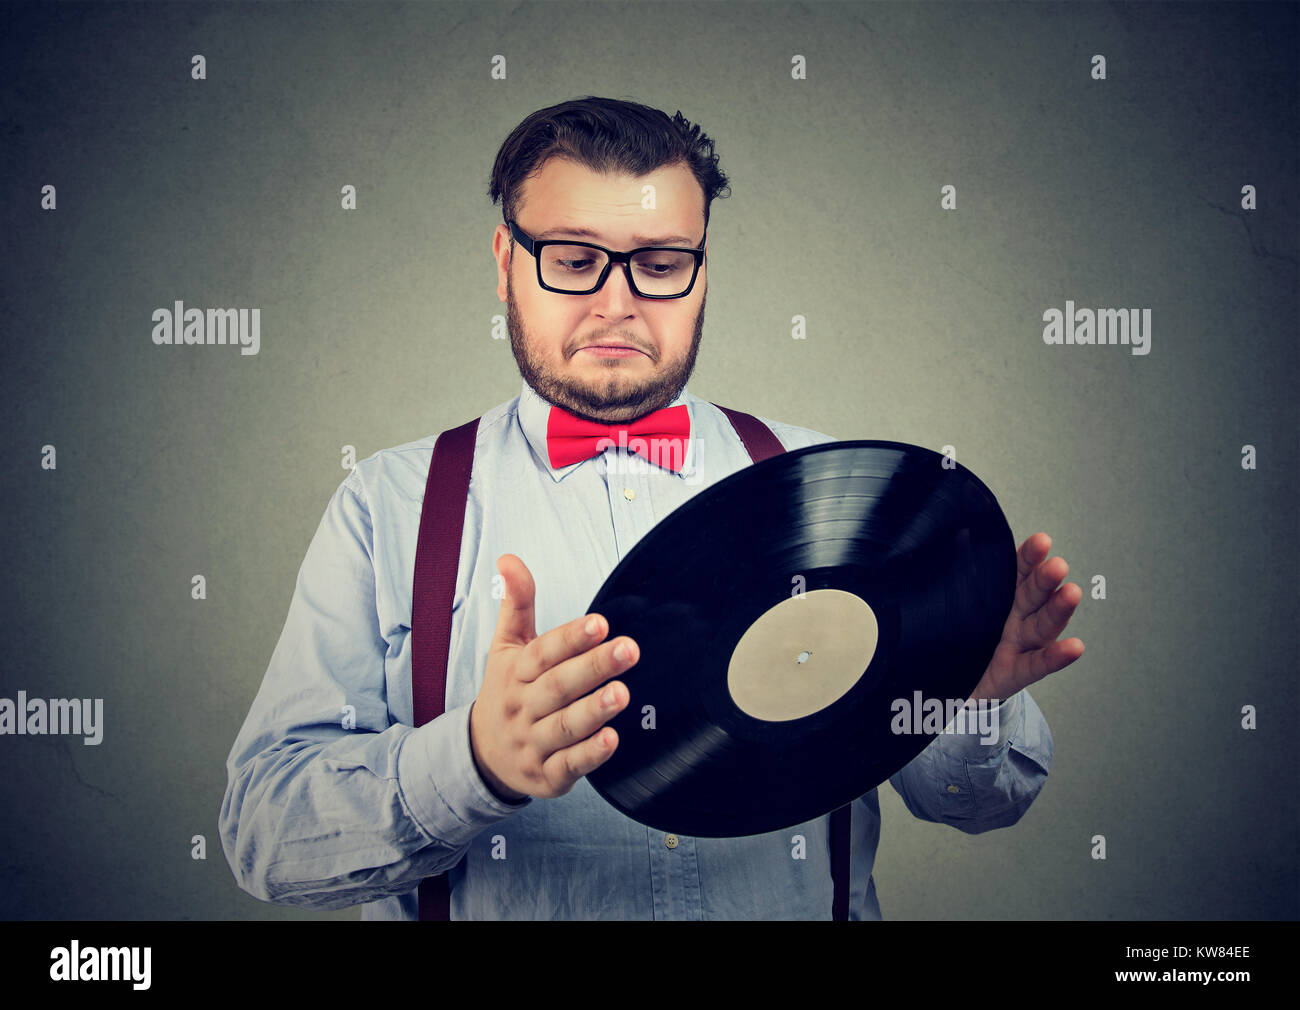 Chunky man in formal outfit holding old vinyl disk looking confused. - Stock Image